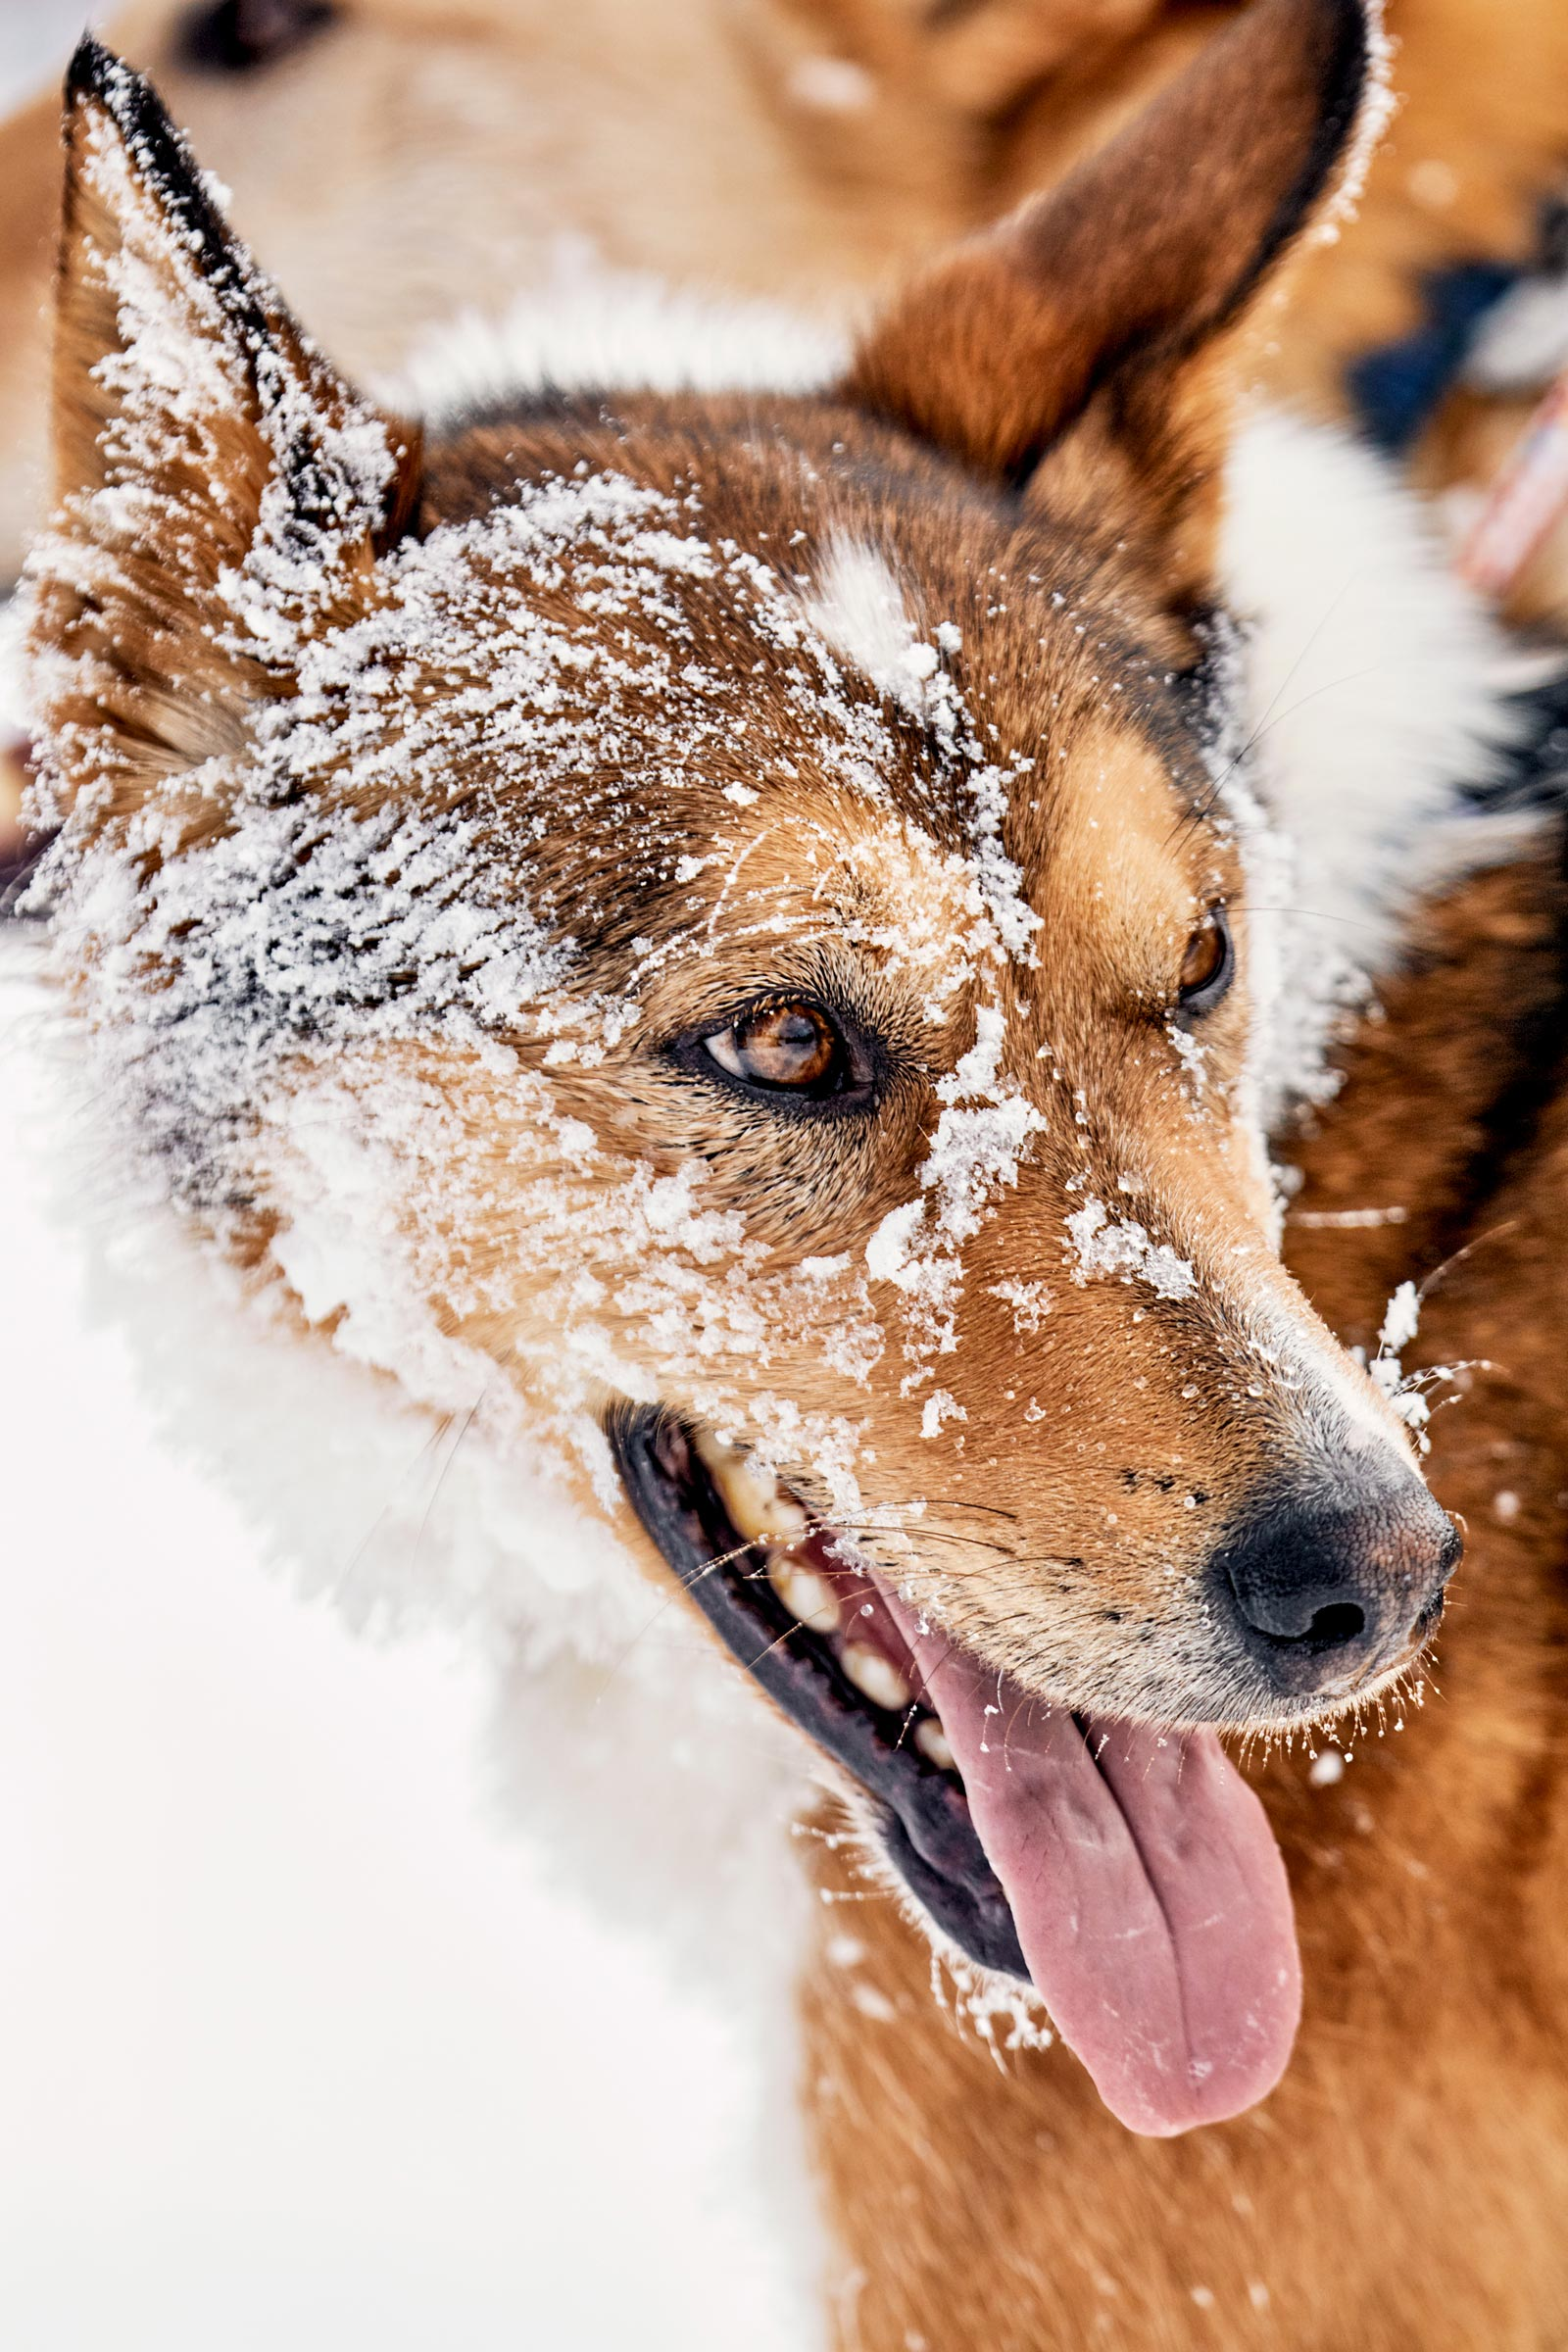 M_WilsonCan_AM-Dog-Sled00022